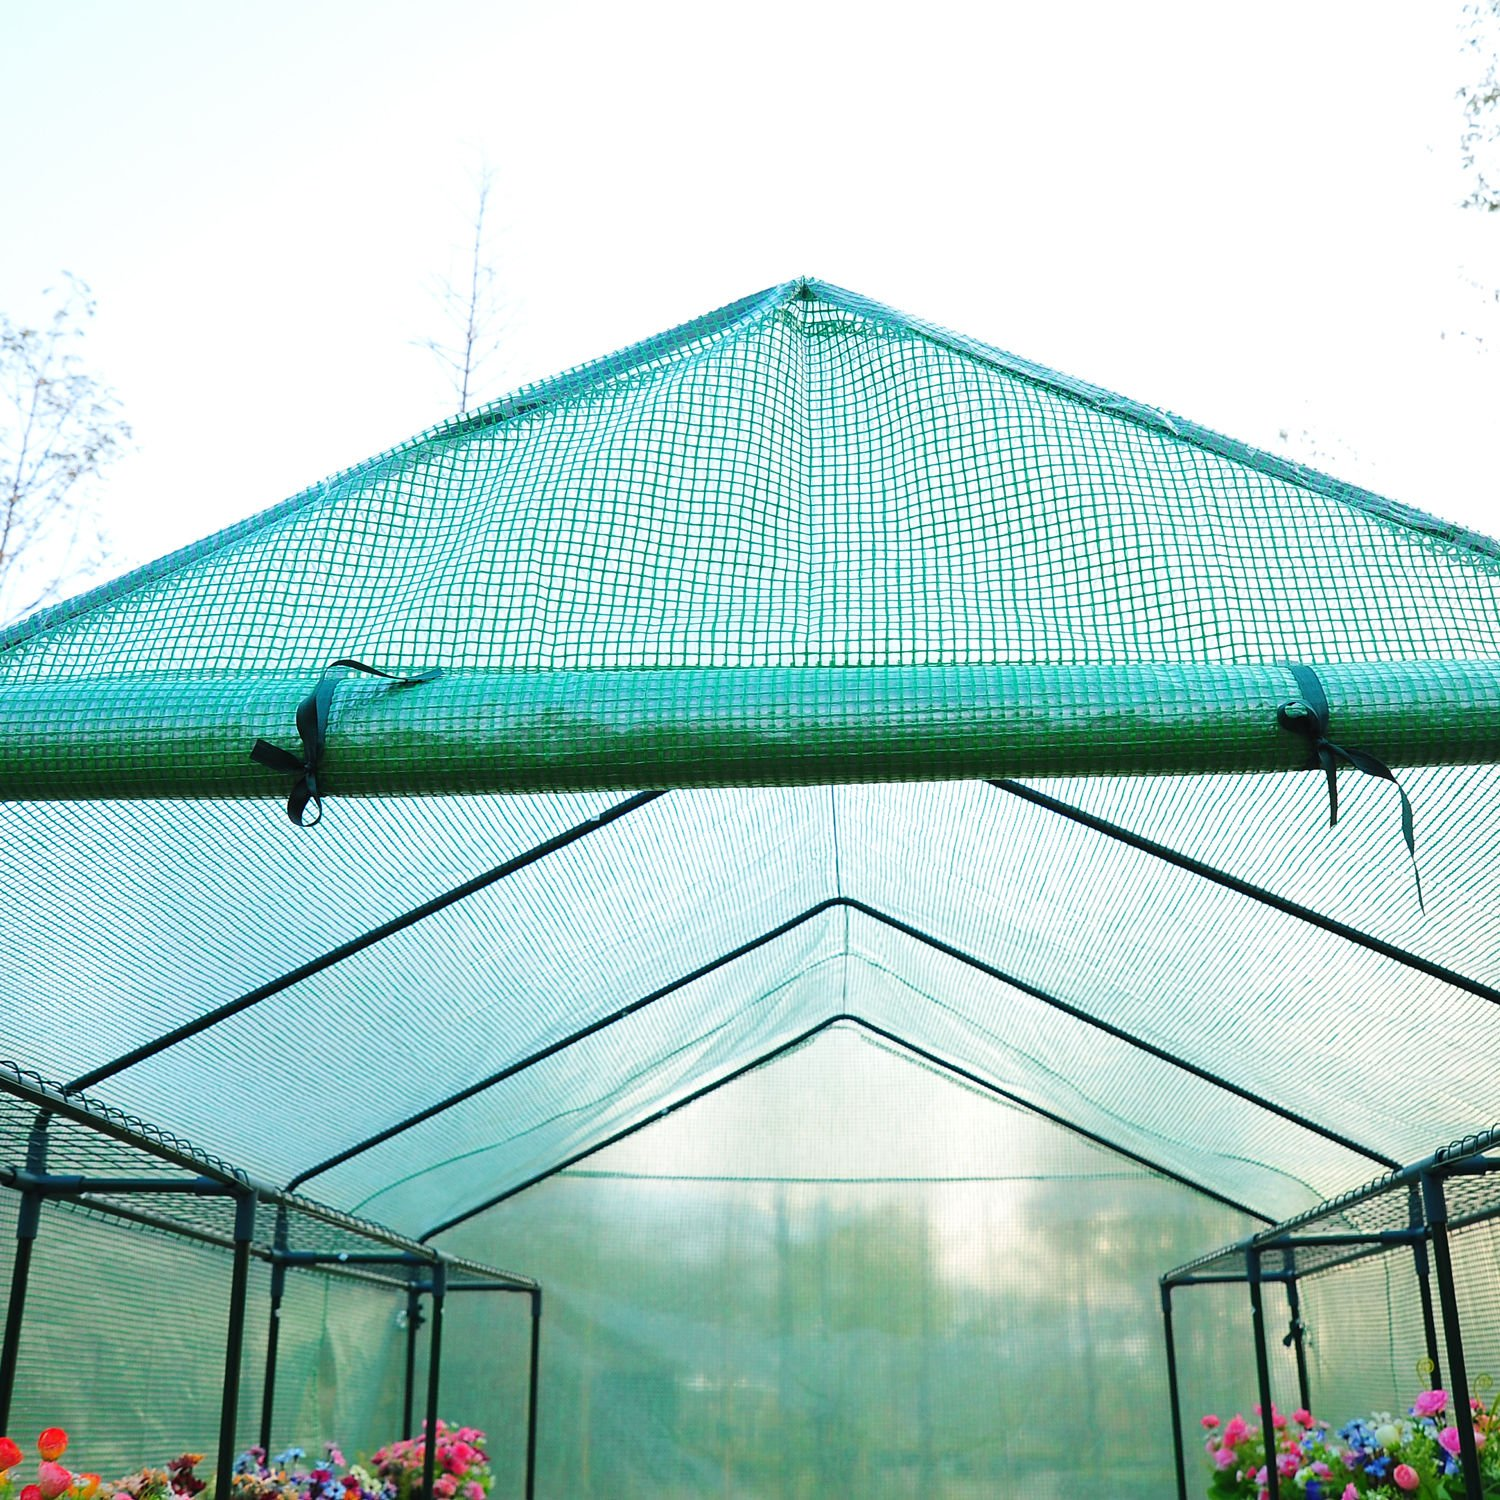 Outsunny 8' x 6' x 7' Outdoor Portable Walk-in Greenhouse by Outsunny (Image #8)